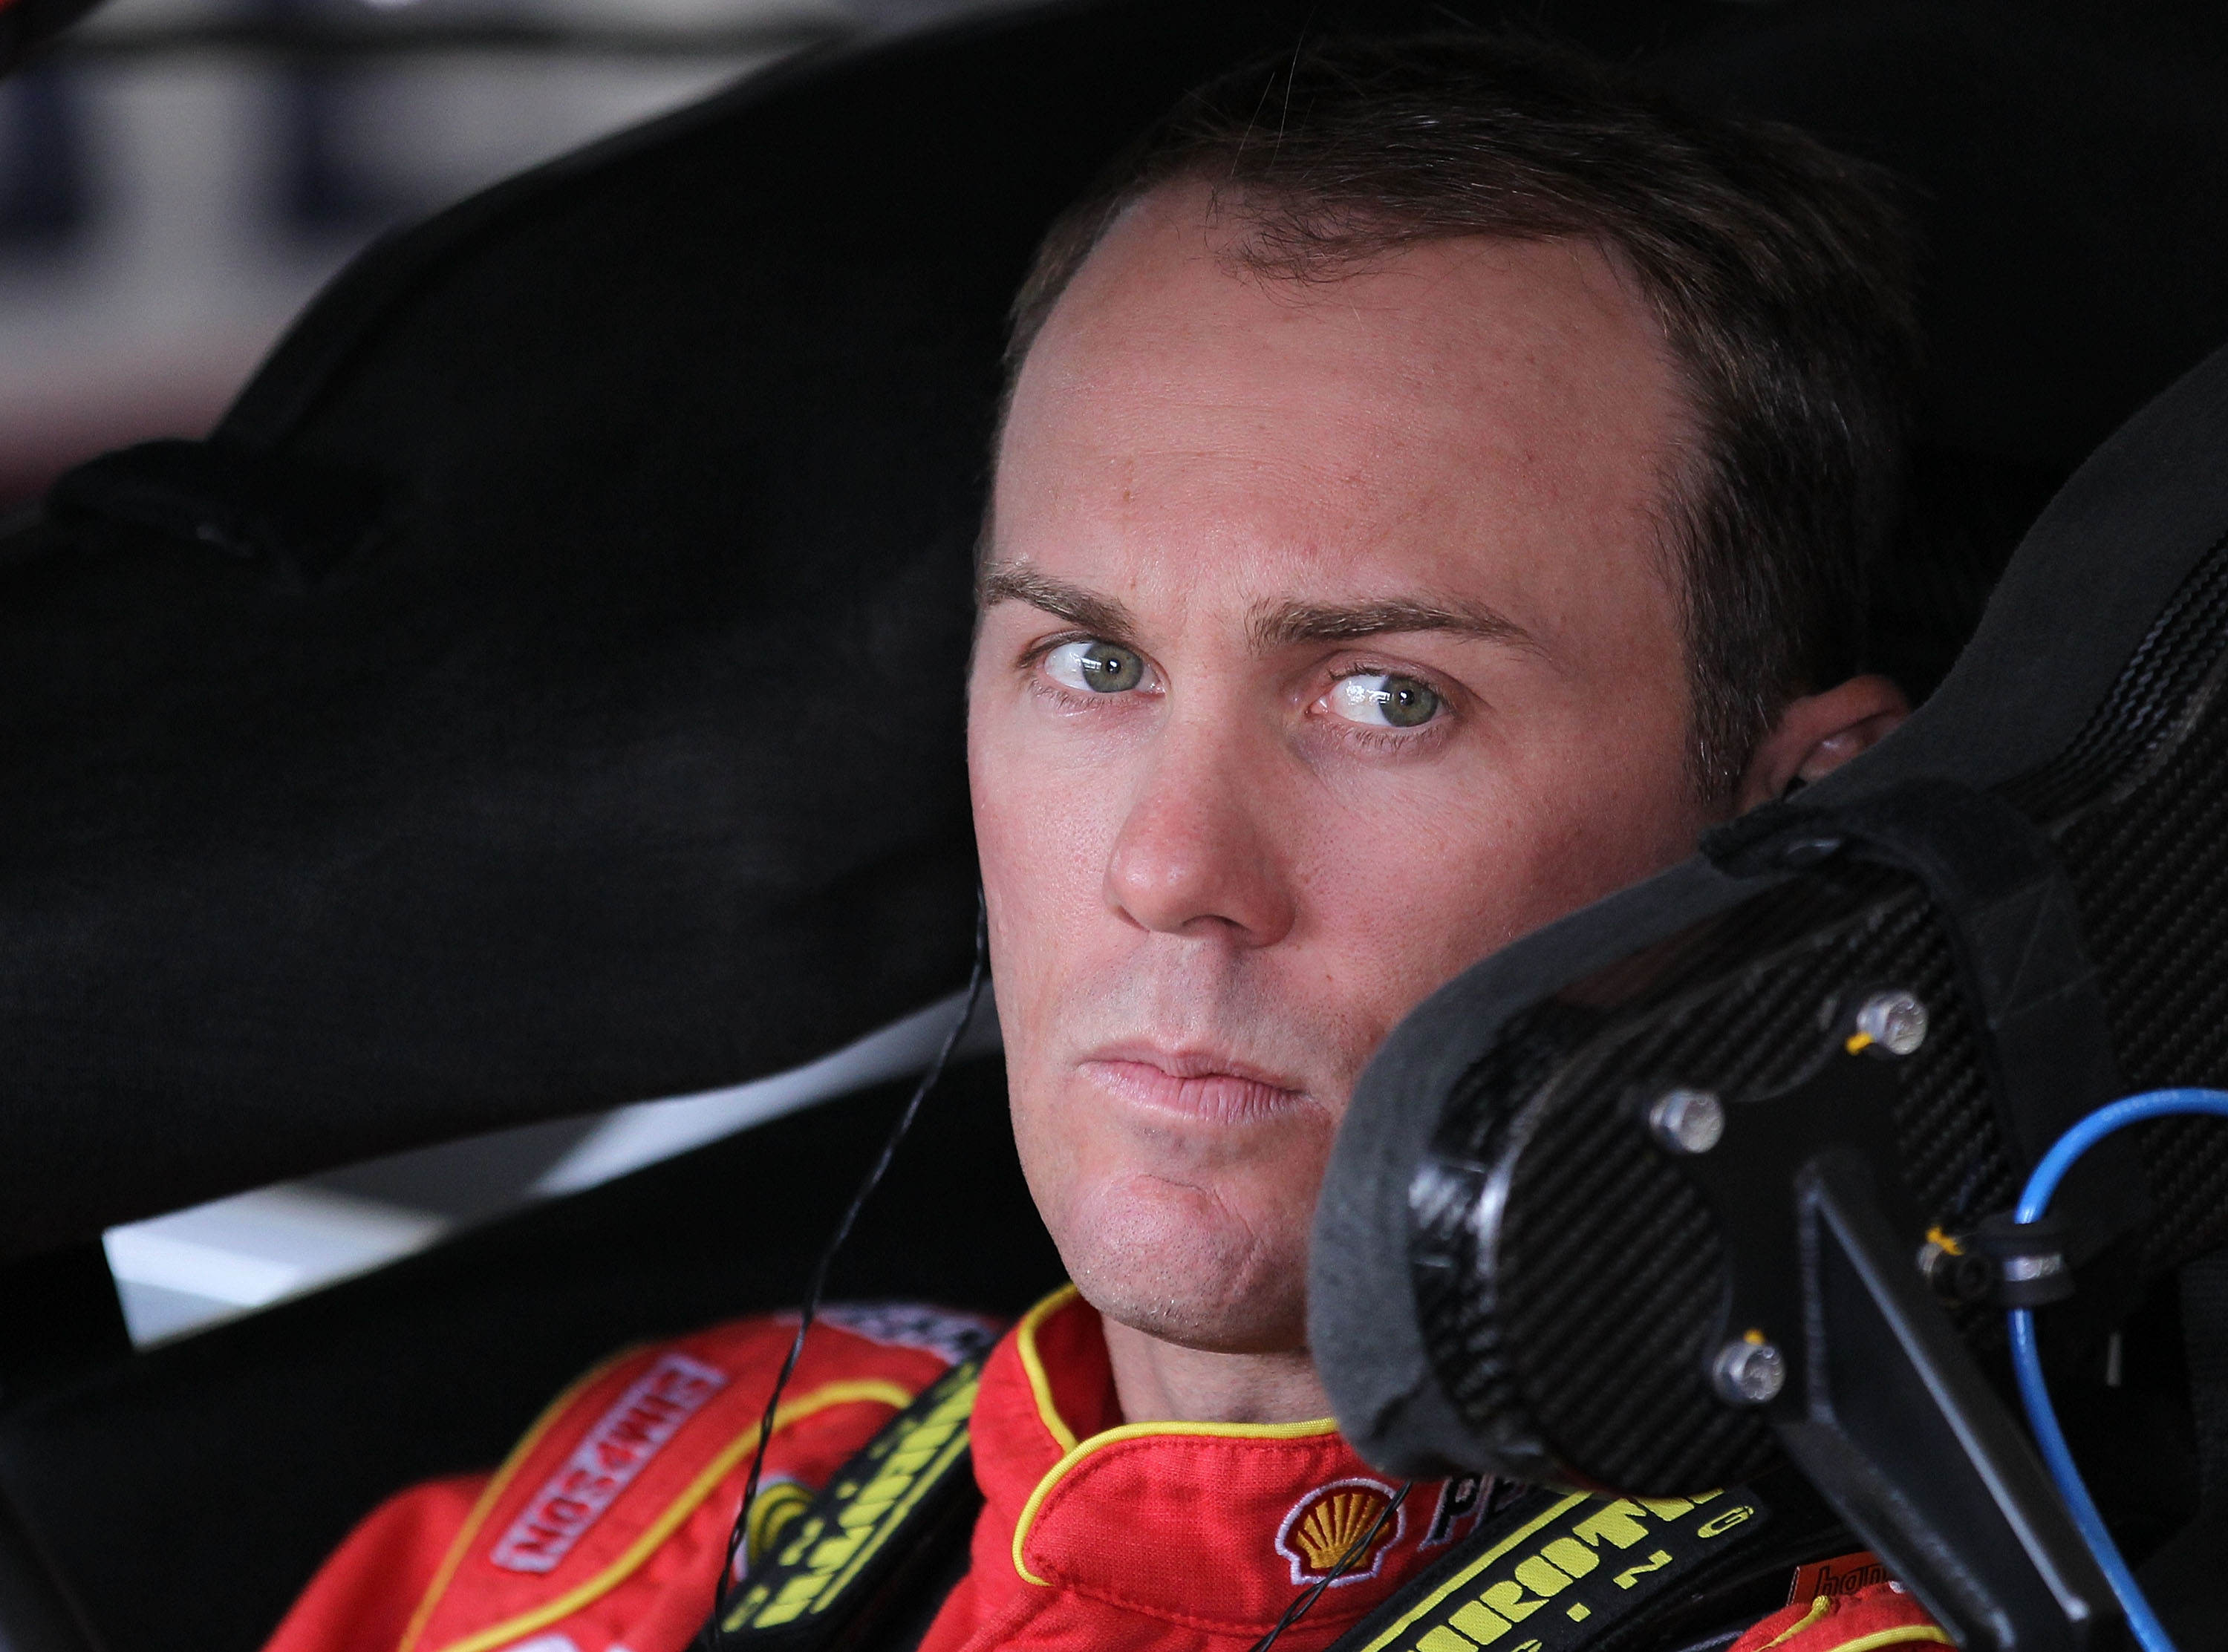 LONG POND, PA - JULY 30:  Kevin Harvick, driver of the #29 Shell/Pennzoil Chevrolet, sits in his car during practice for the NASCAR Sprint Cup Series Sunoco Red Cross Pennsylvania 500 at Pocono Raceway on July 30, 2010 in Long Pond, Pennsylvania.  (Photo